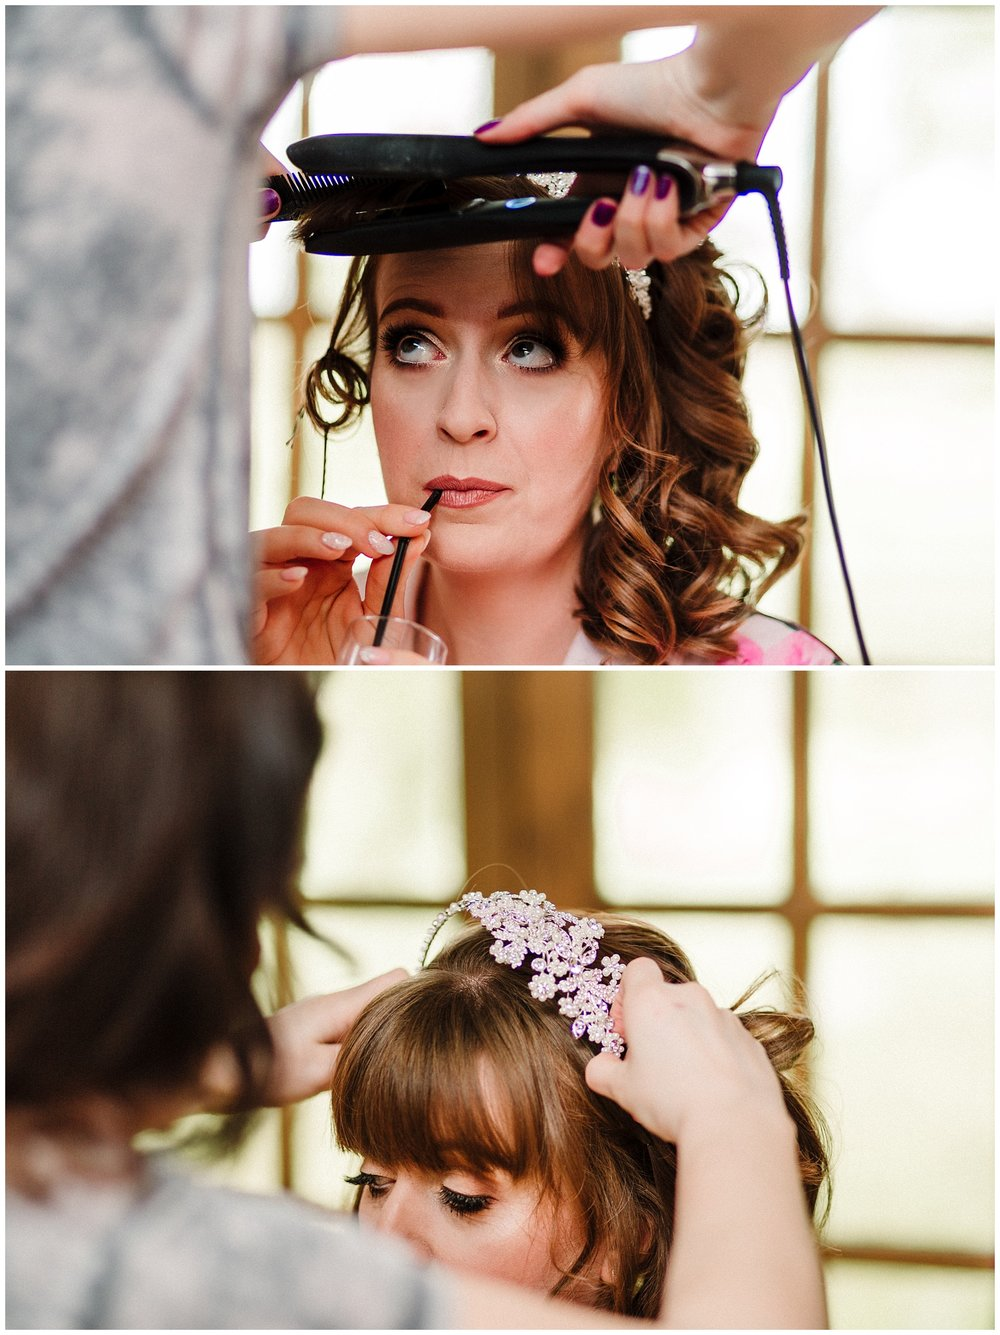 A bride drinking from a straw while having her hair done